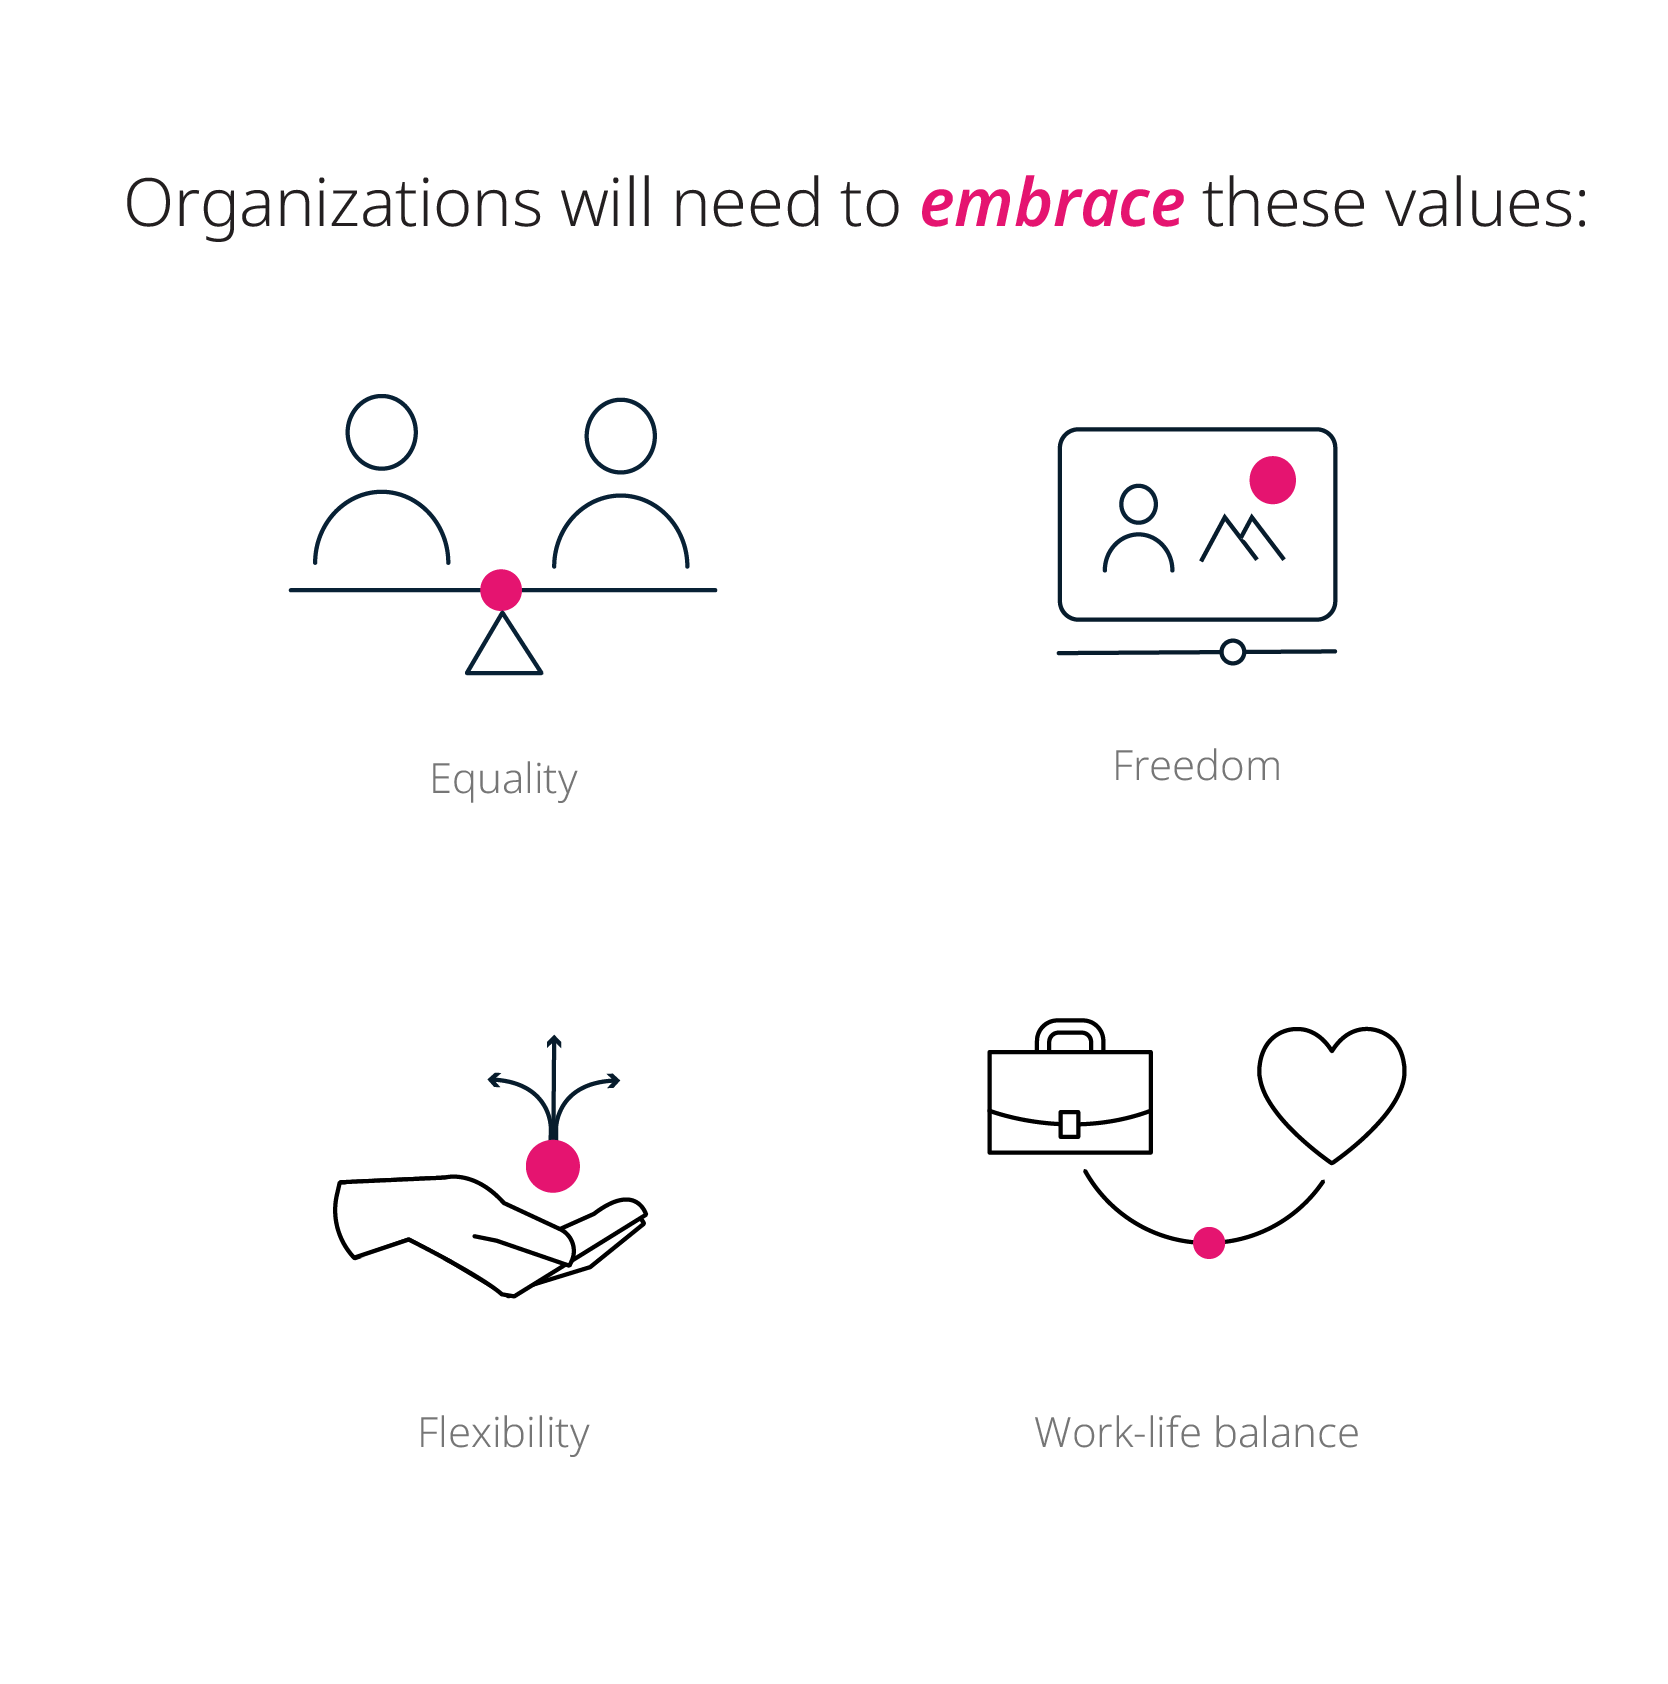 Values that organizations will need to embrace in the future world of work